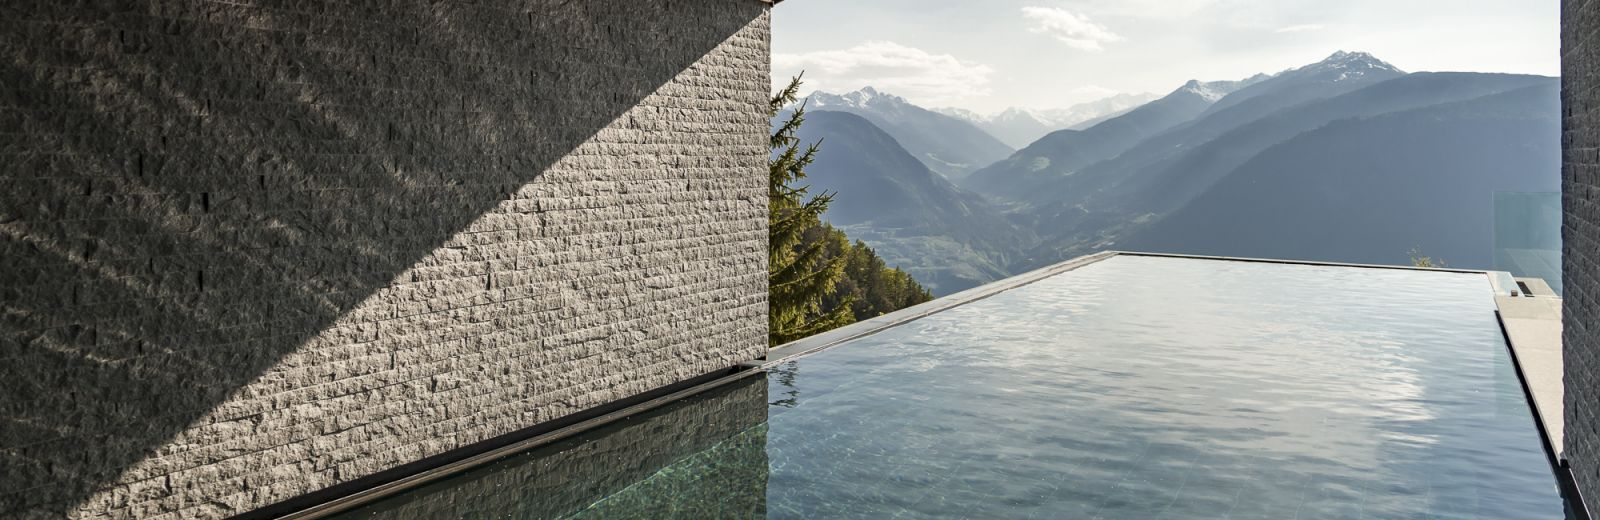 Miramonti, Hotel, luxury, boutique, design, Alps, romantic, South Tyrol, Italy